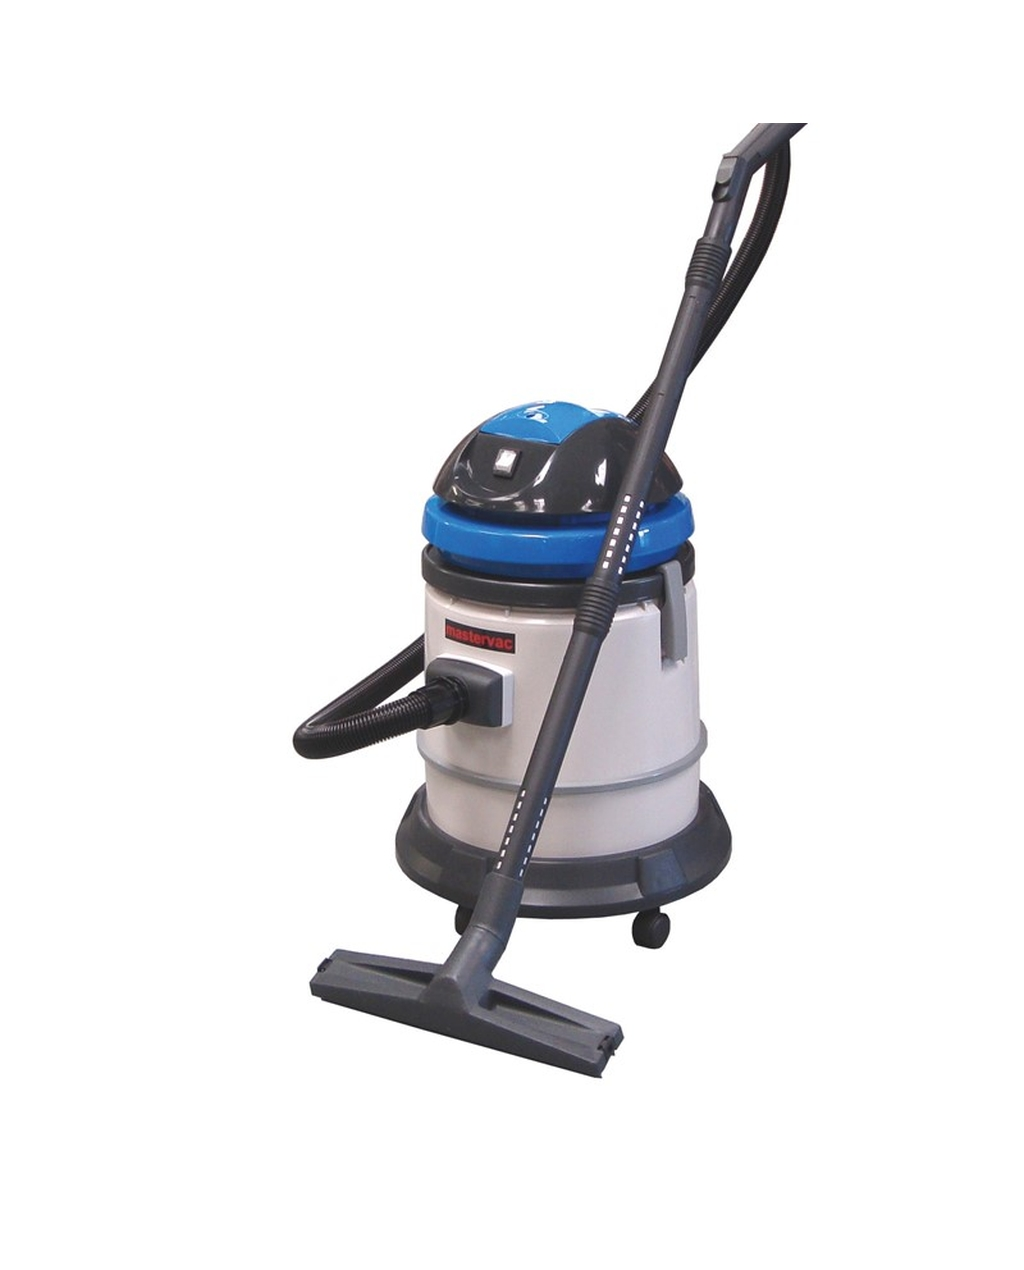 24 Litre Wet and Dry Vacuum